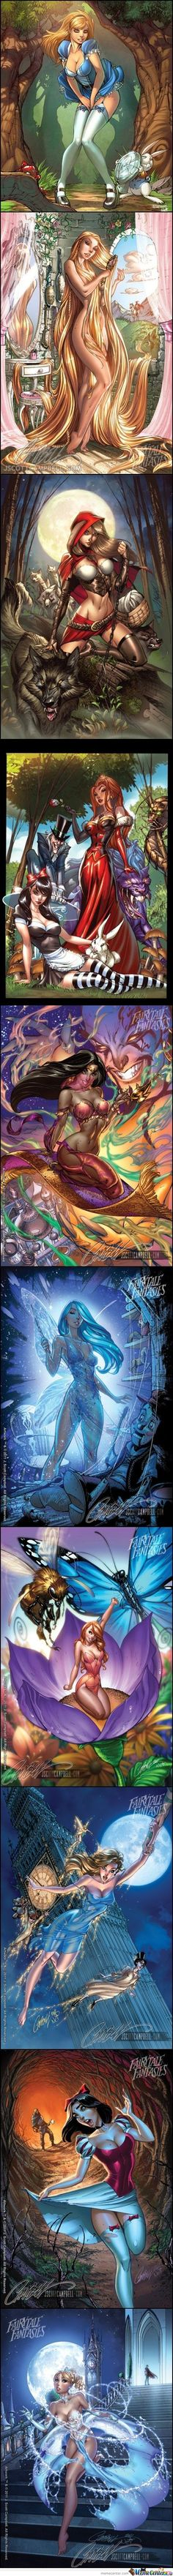 Princesas Disney Sexys, J Scott Campbell